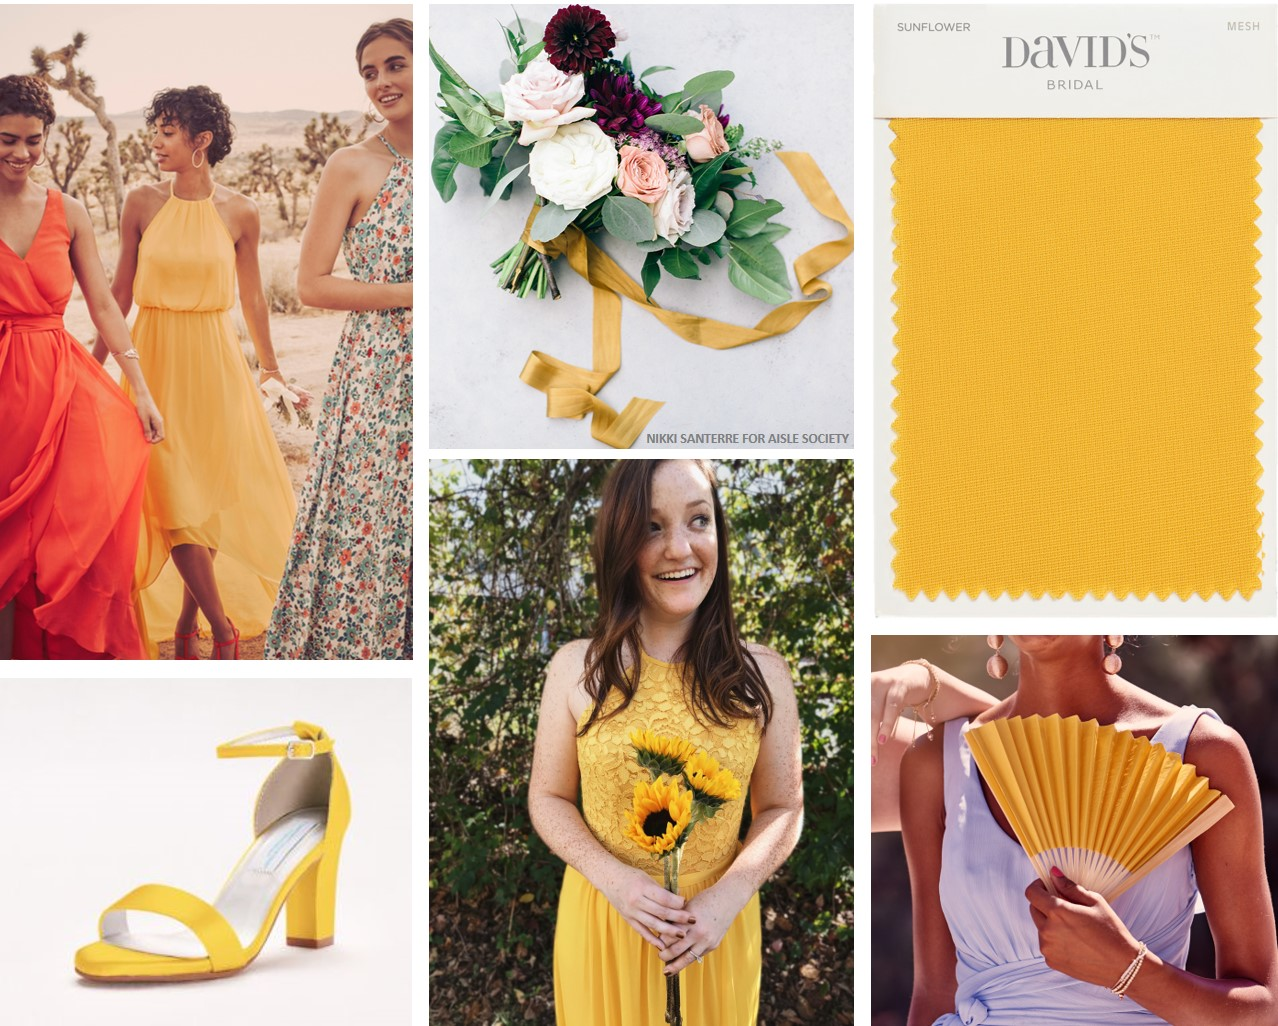 Sunflower Yellow Bridesmaid Dresses from David's Bridal